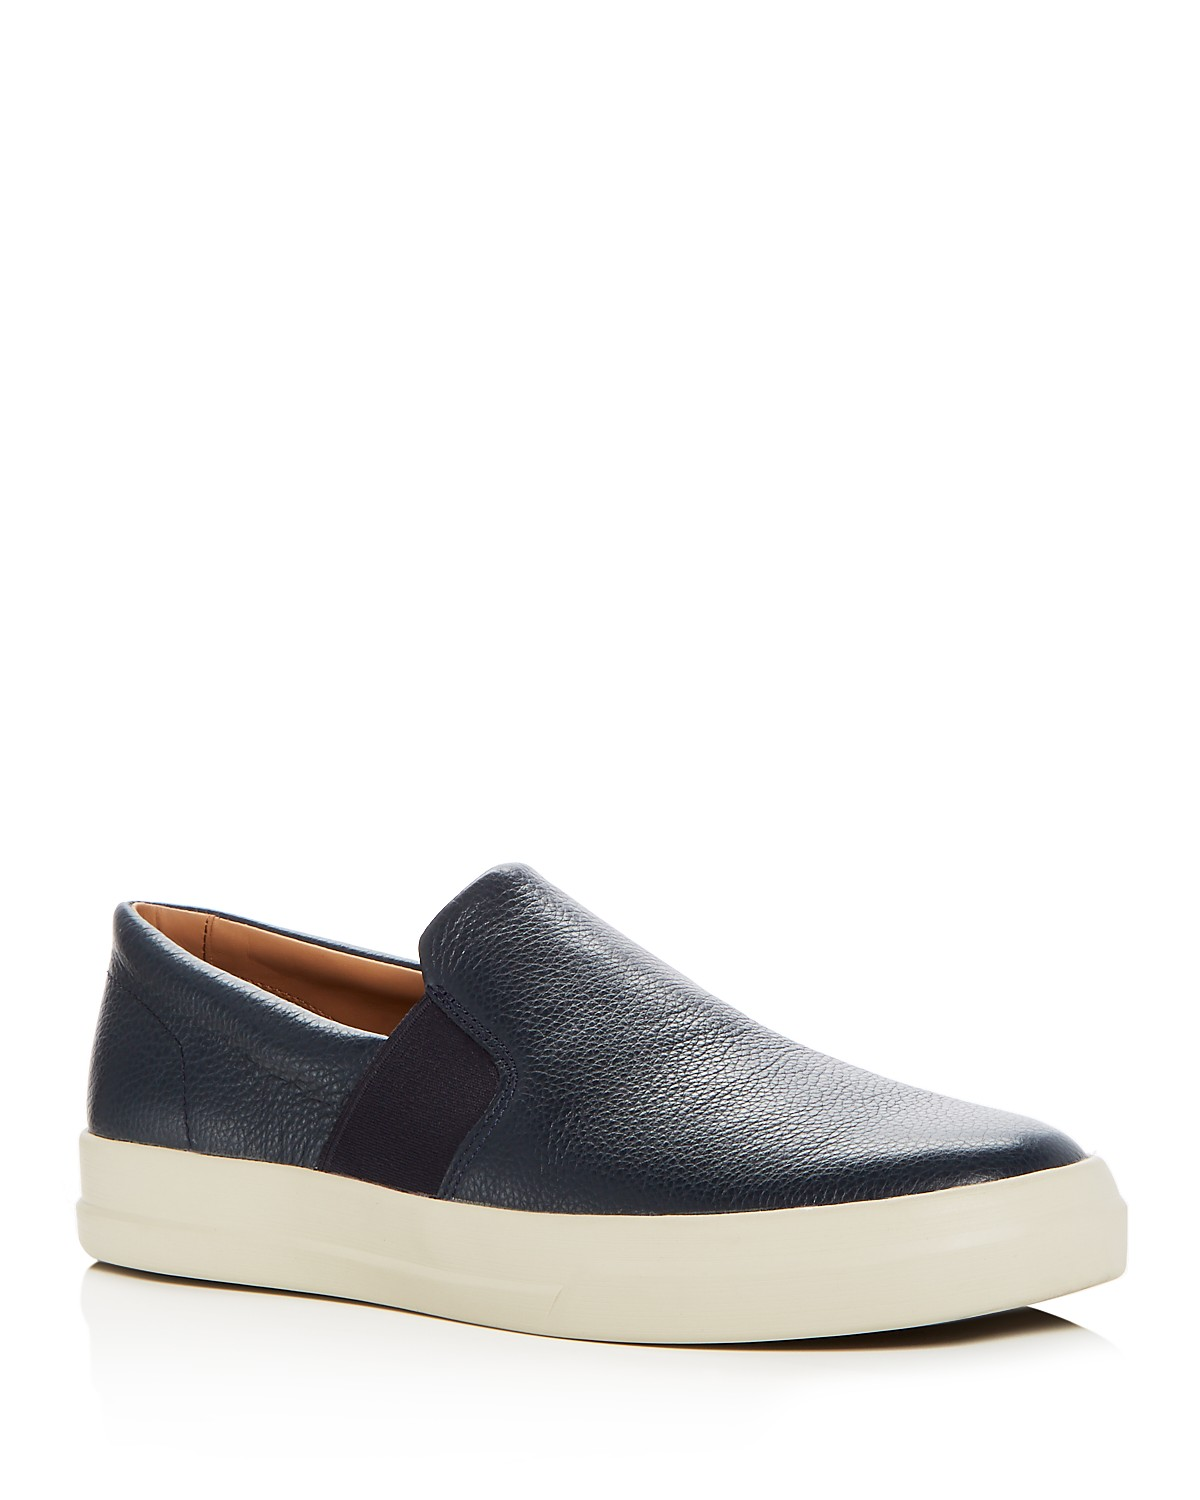 Vince Men's Caleb Leather Slip-On Sneakers juMYo9